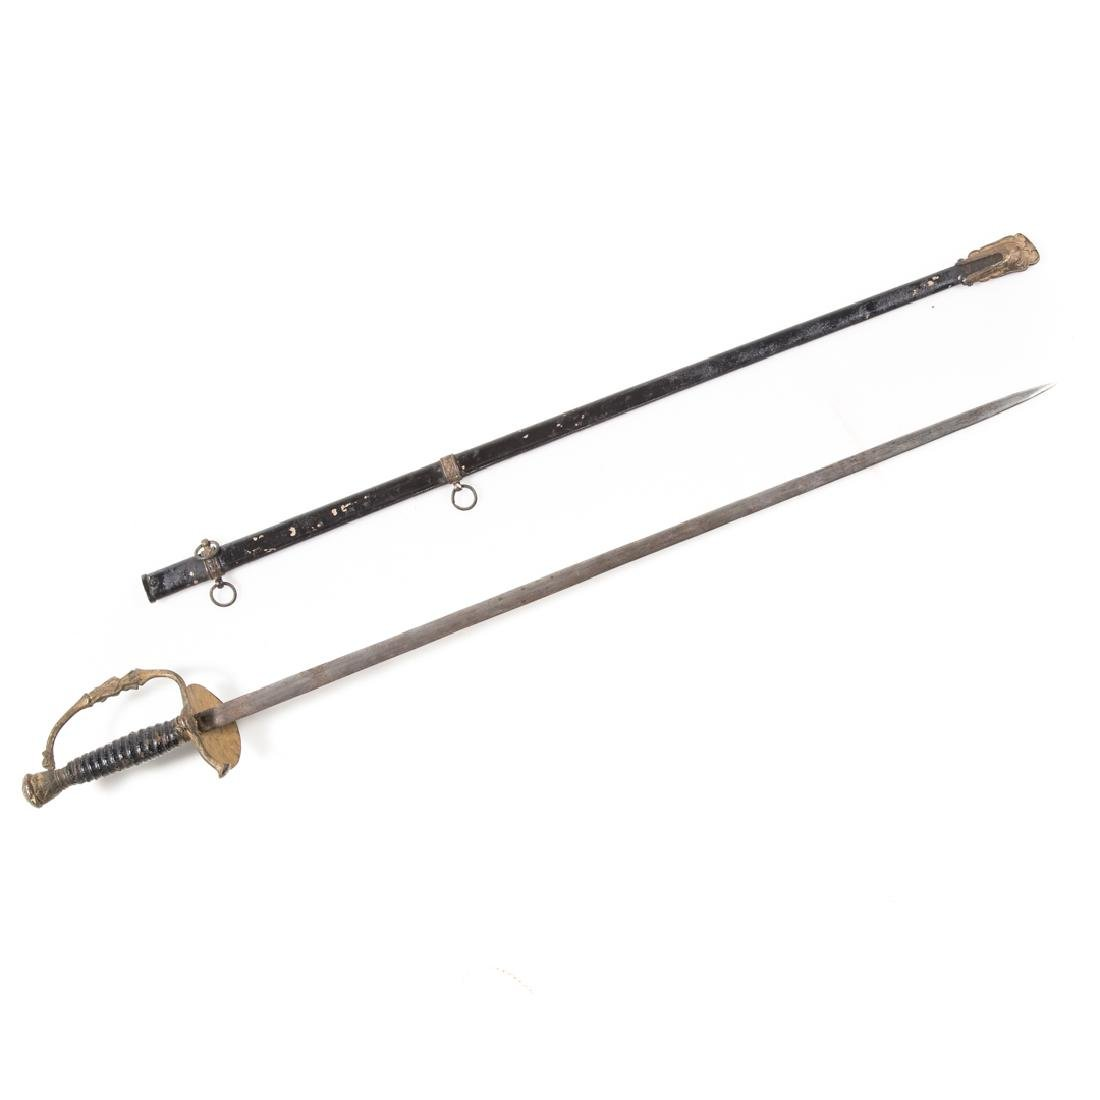 Model 1860 Civil War officer's sword